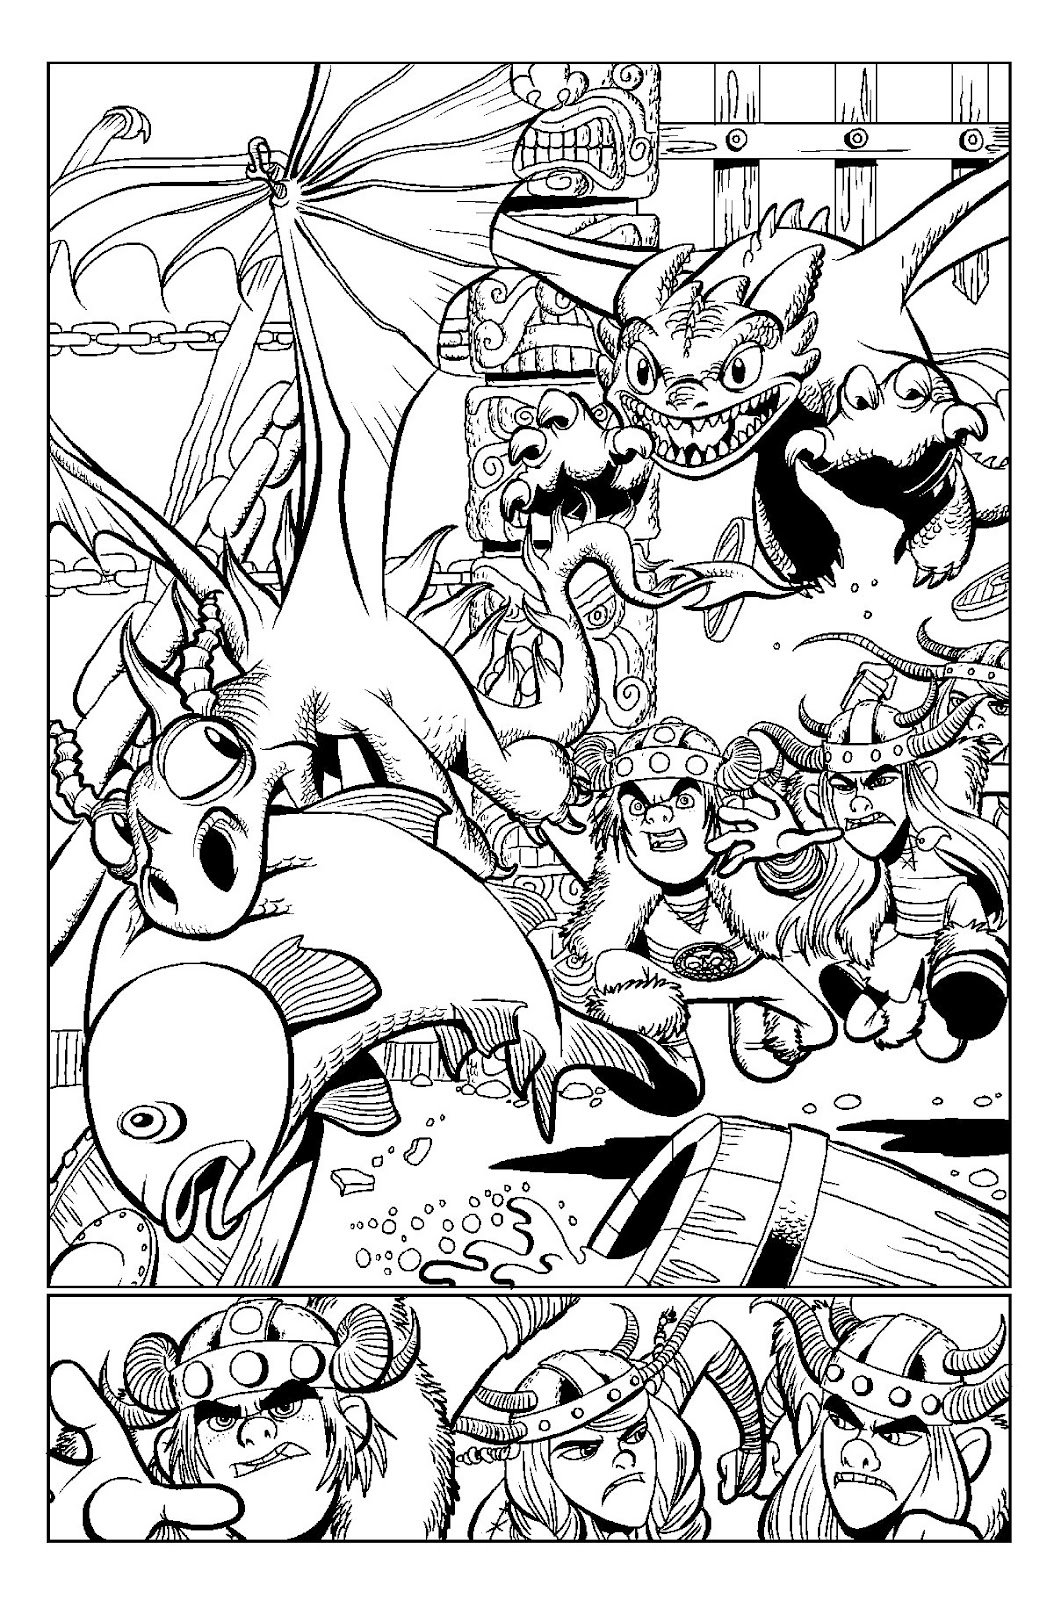 additionally Dragons 2 Coloring Pages how to train your dragon 36854788 542 693 additionally  as well gcpjzpycM likewise httyd lineart prep by vtruss1 d6m4lie also The Skrill by Coyote Whitemalice moreover tumblr m47f3l2AsE1qlq12ko1 1280 together with Toothless 20cute2 besides 6b010f5db7b55e0e6491096f03eeba1b further  together with Printable coloring pages dragon riders. on dragon riders of berk coloring pages squirrel